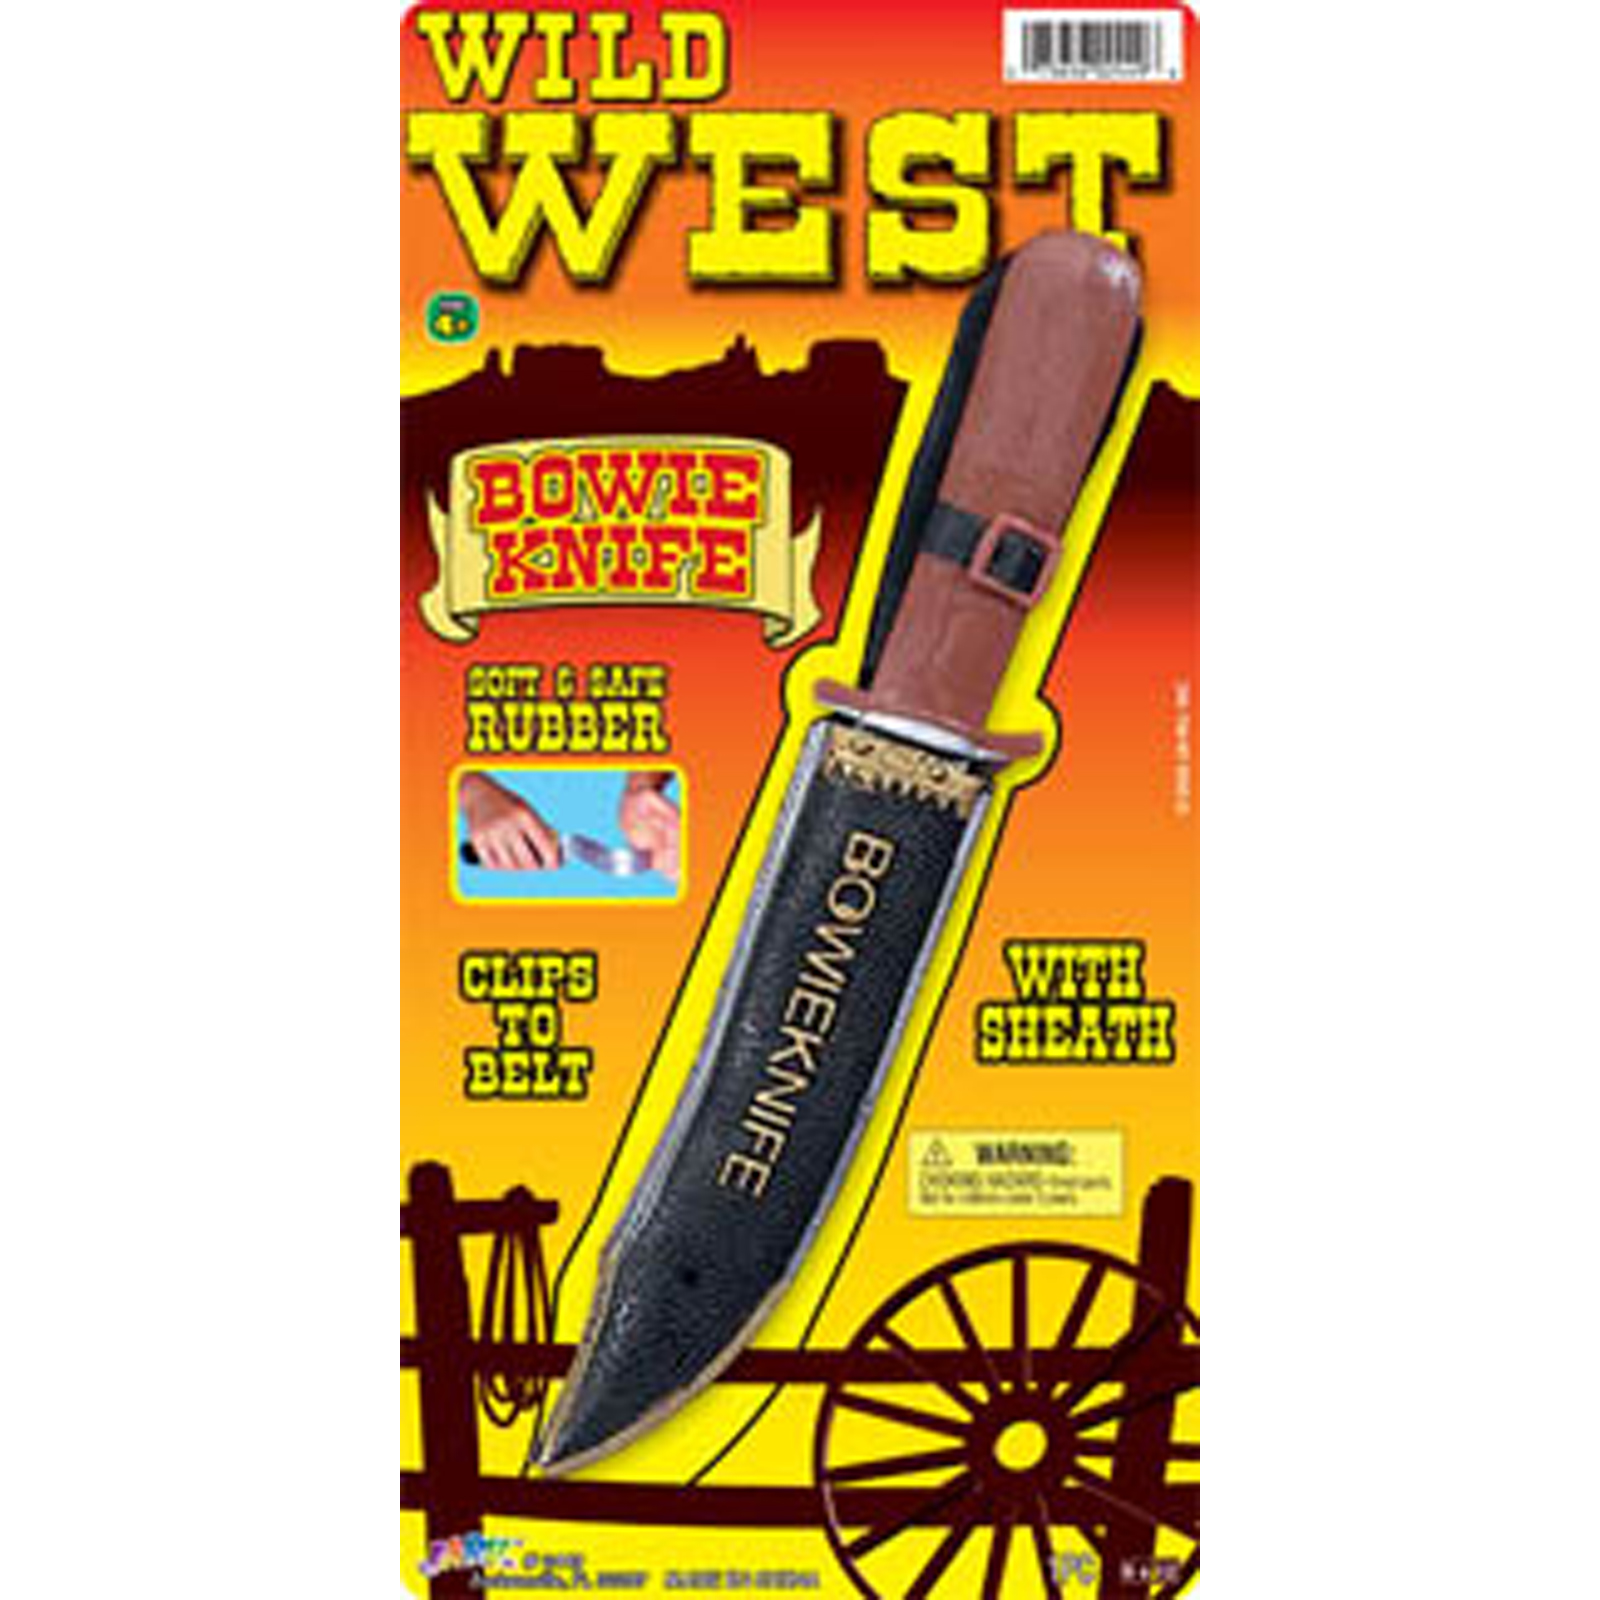 Wild West Bowie Knife - 1 Pkg